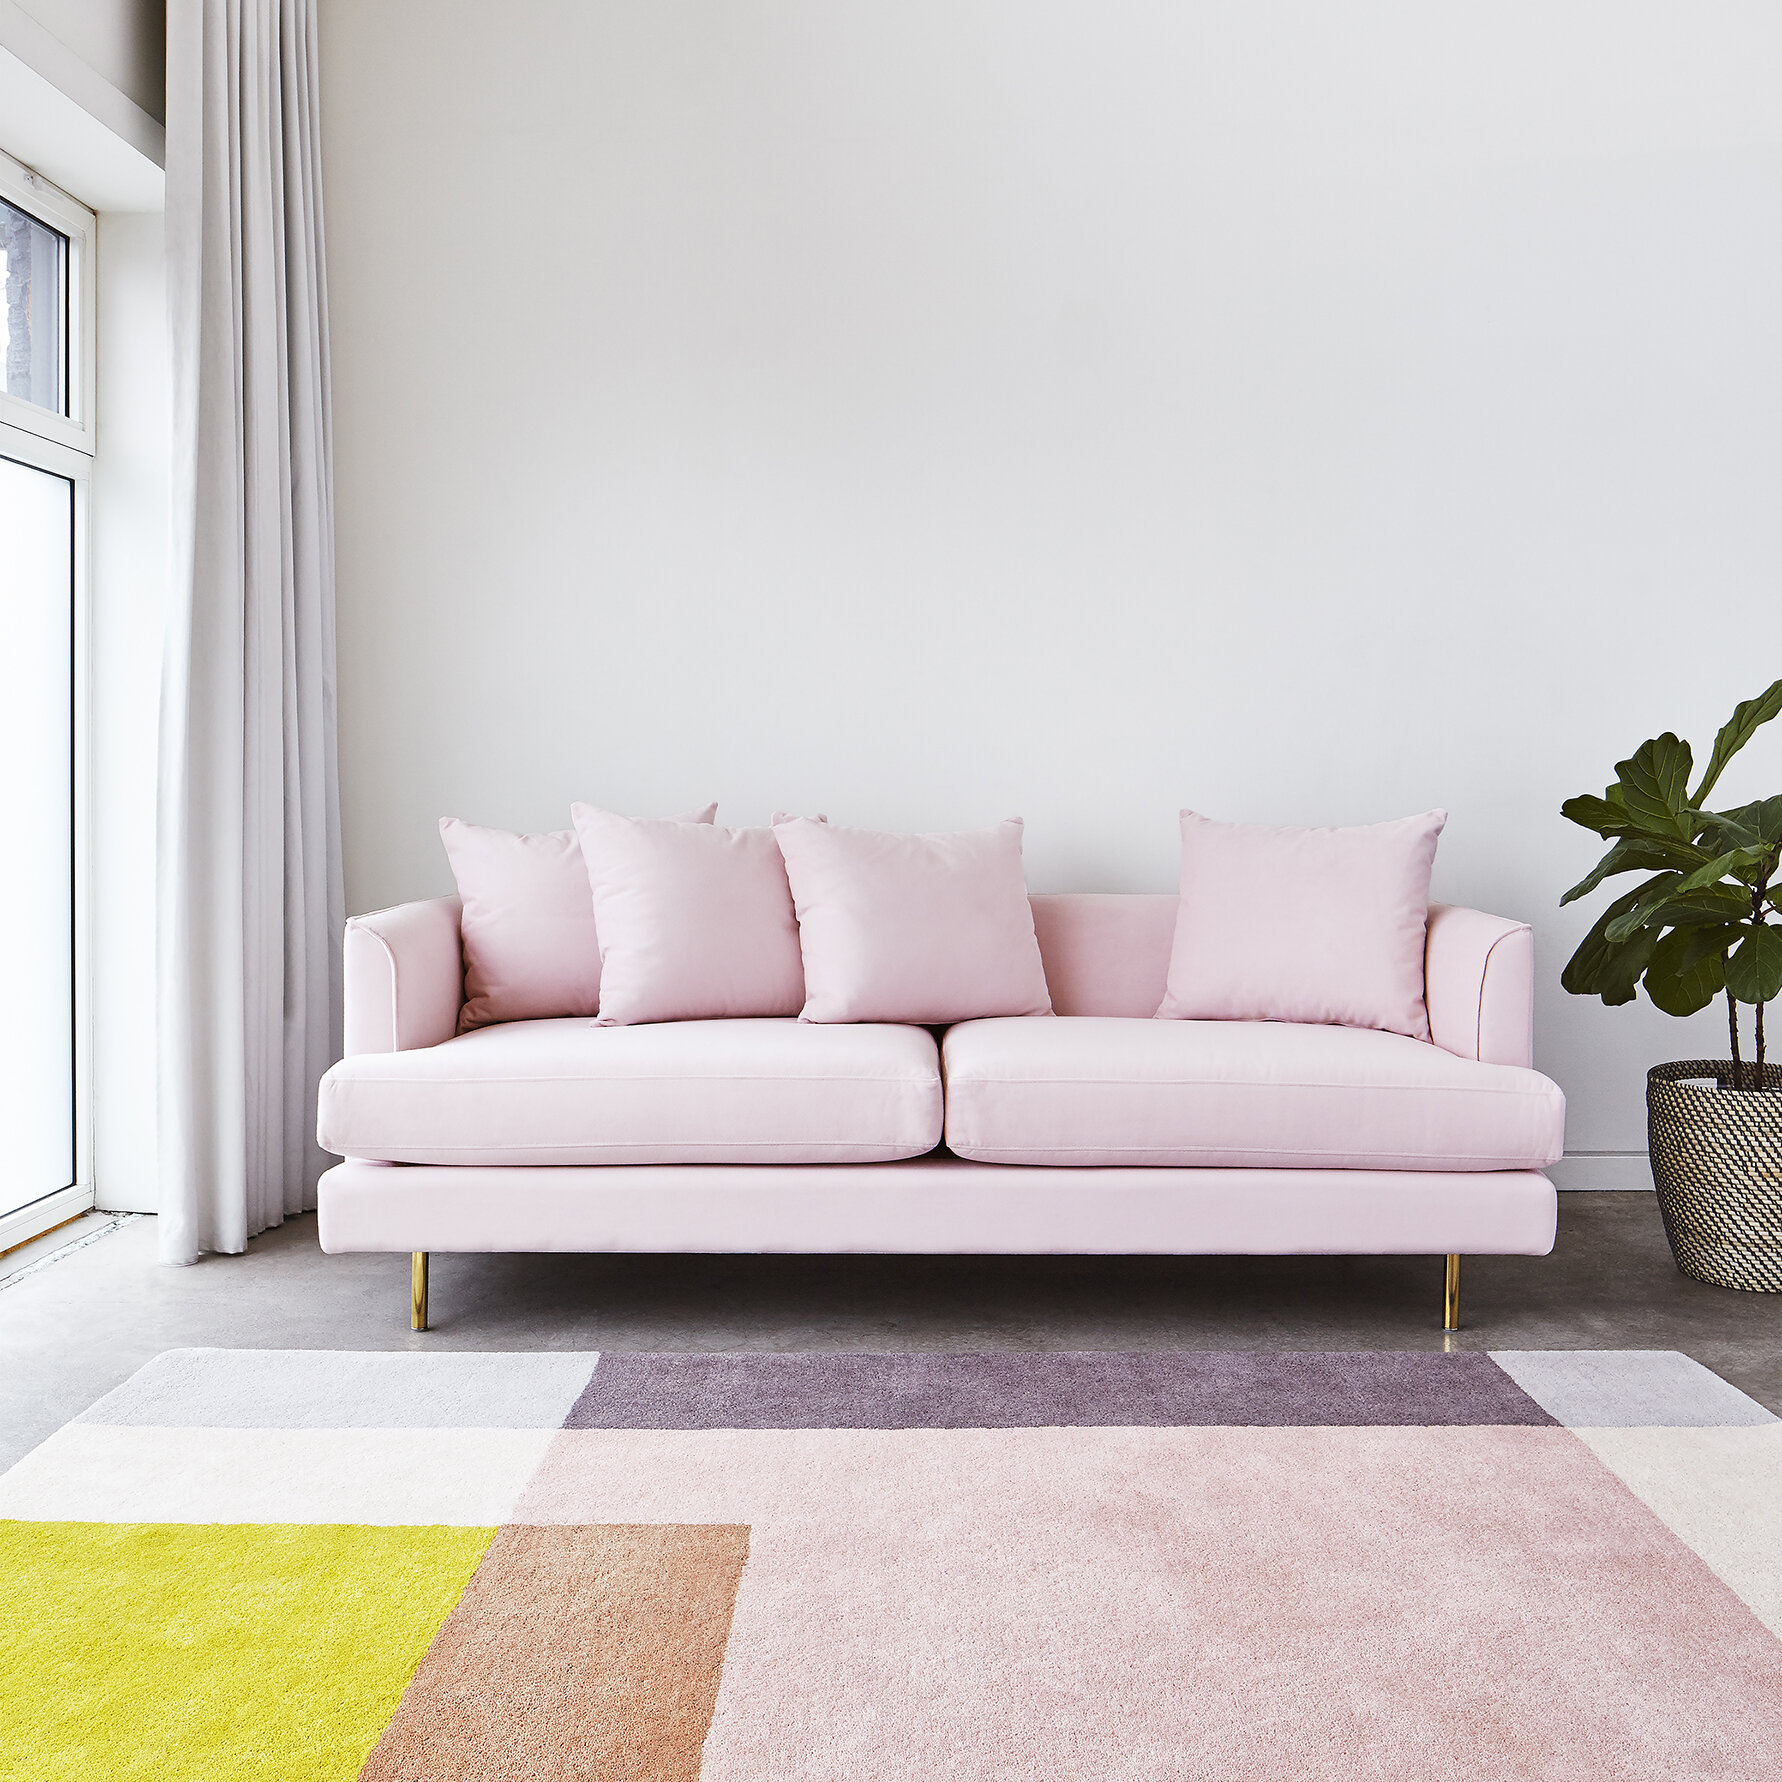 Gus modern margot sofa reviews wayfair ca